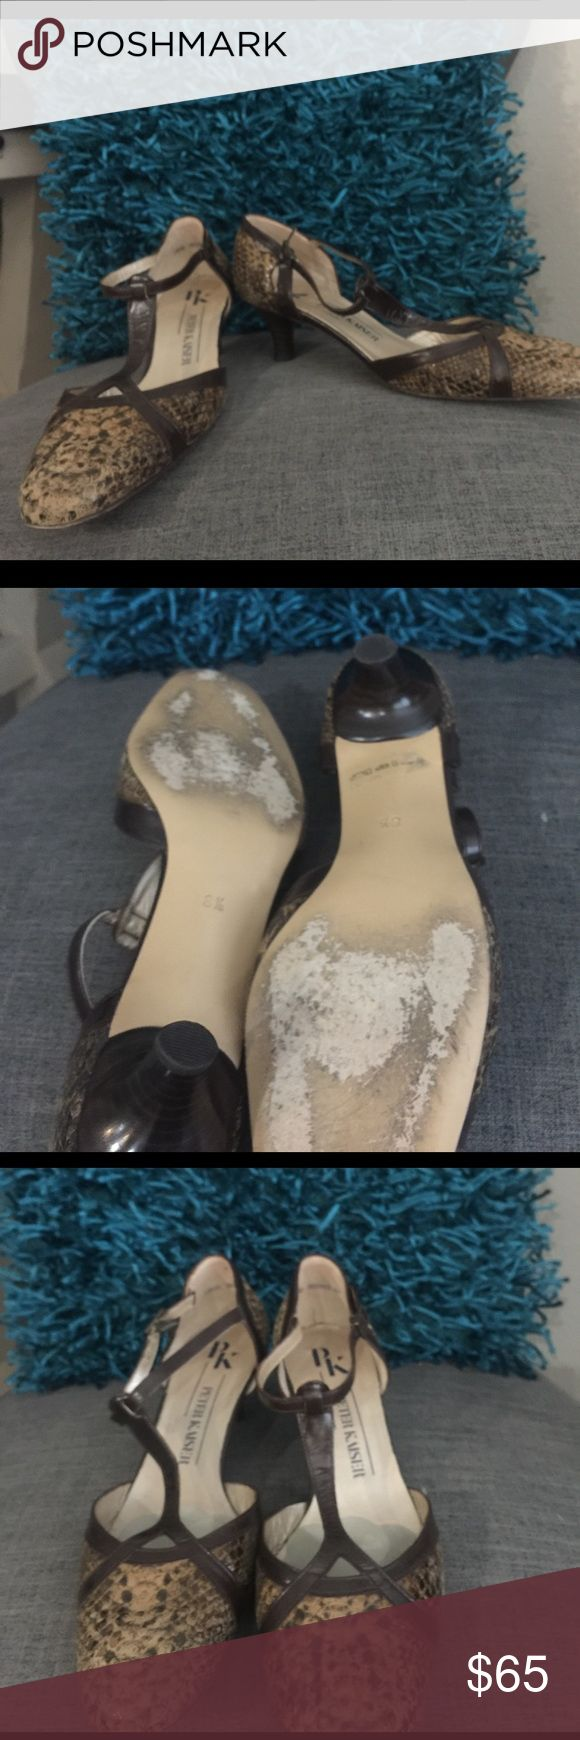 Size 8 1/2 Peter Kaiser t-strap heels. Size 8 1/2 Peter Kaiser snakeskin look t-strap heels. These are amazing shoes! Shoes Heels